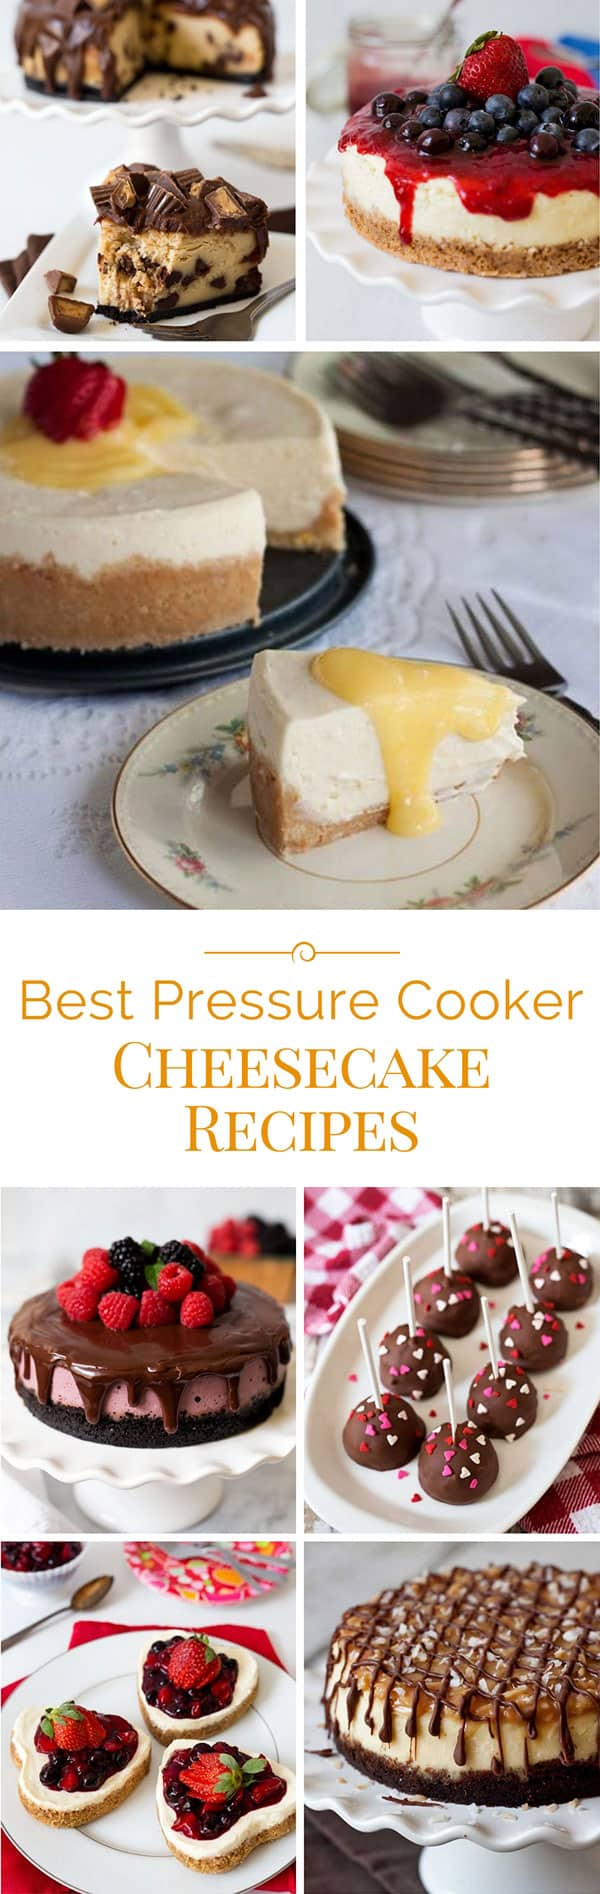 Best Pressure Cooker Cheesecake Recipes and Tips to Creating Perfect Cheesecake in your Pressure Cooker or Instant Pot